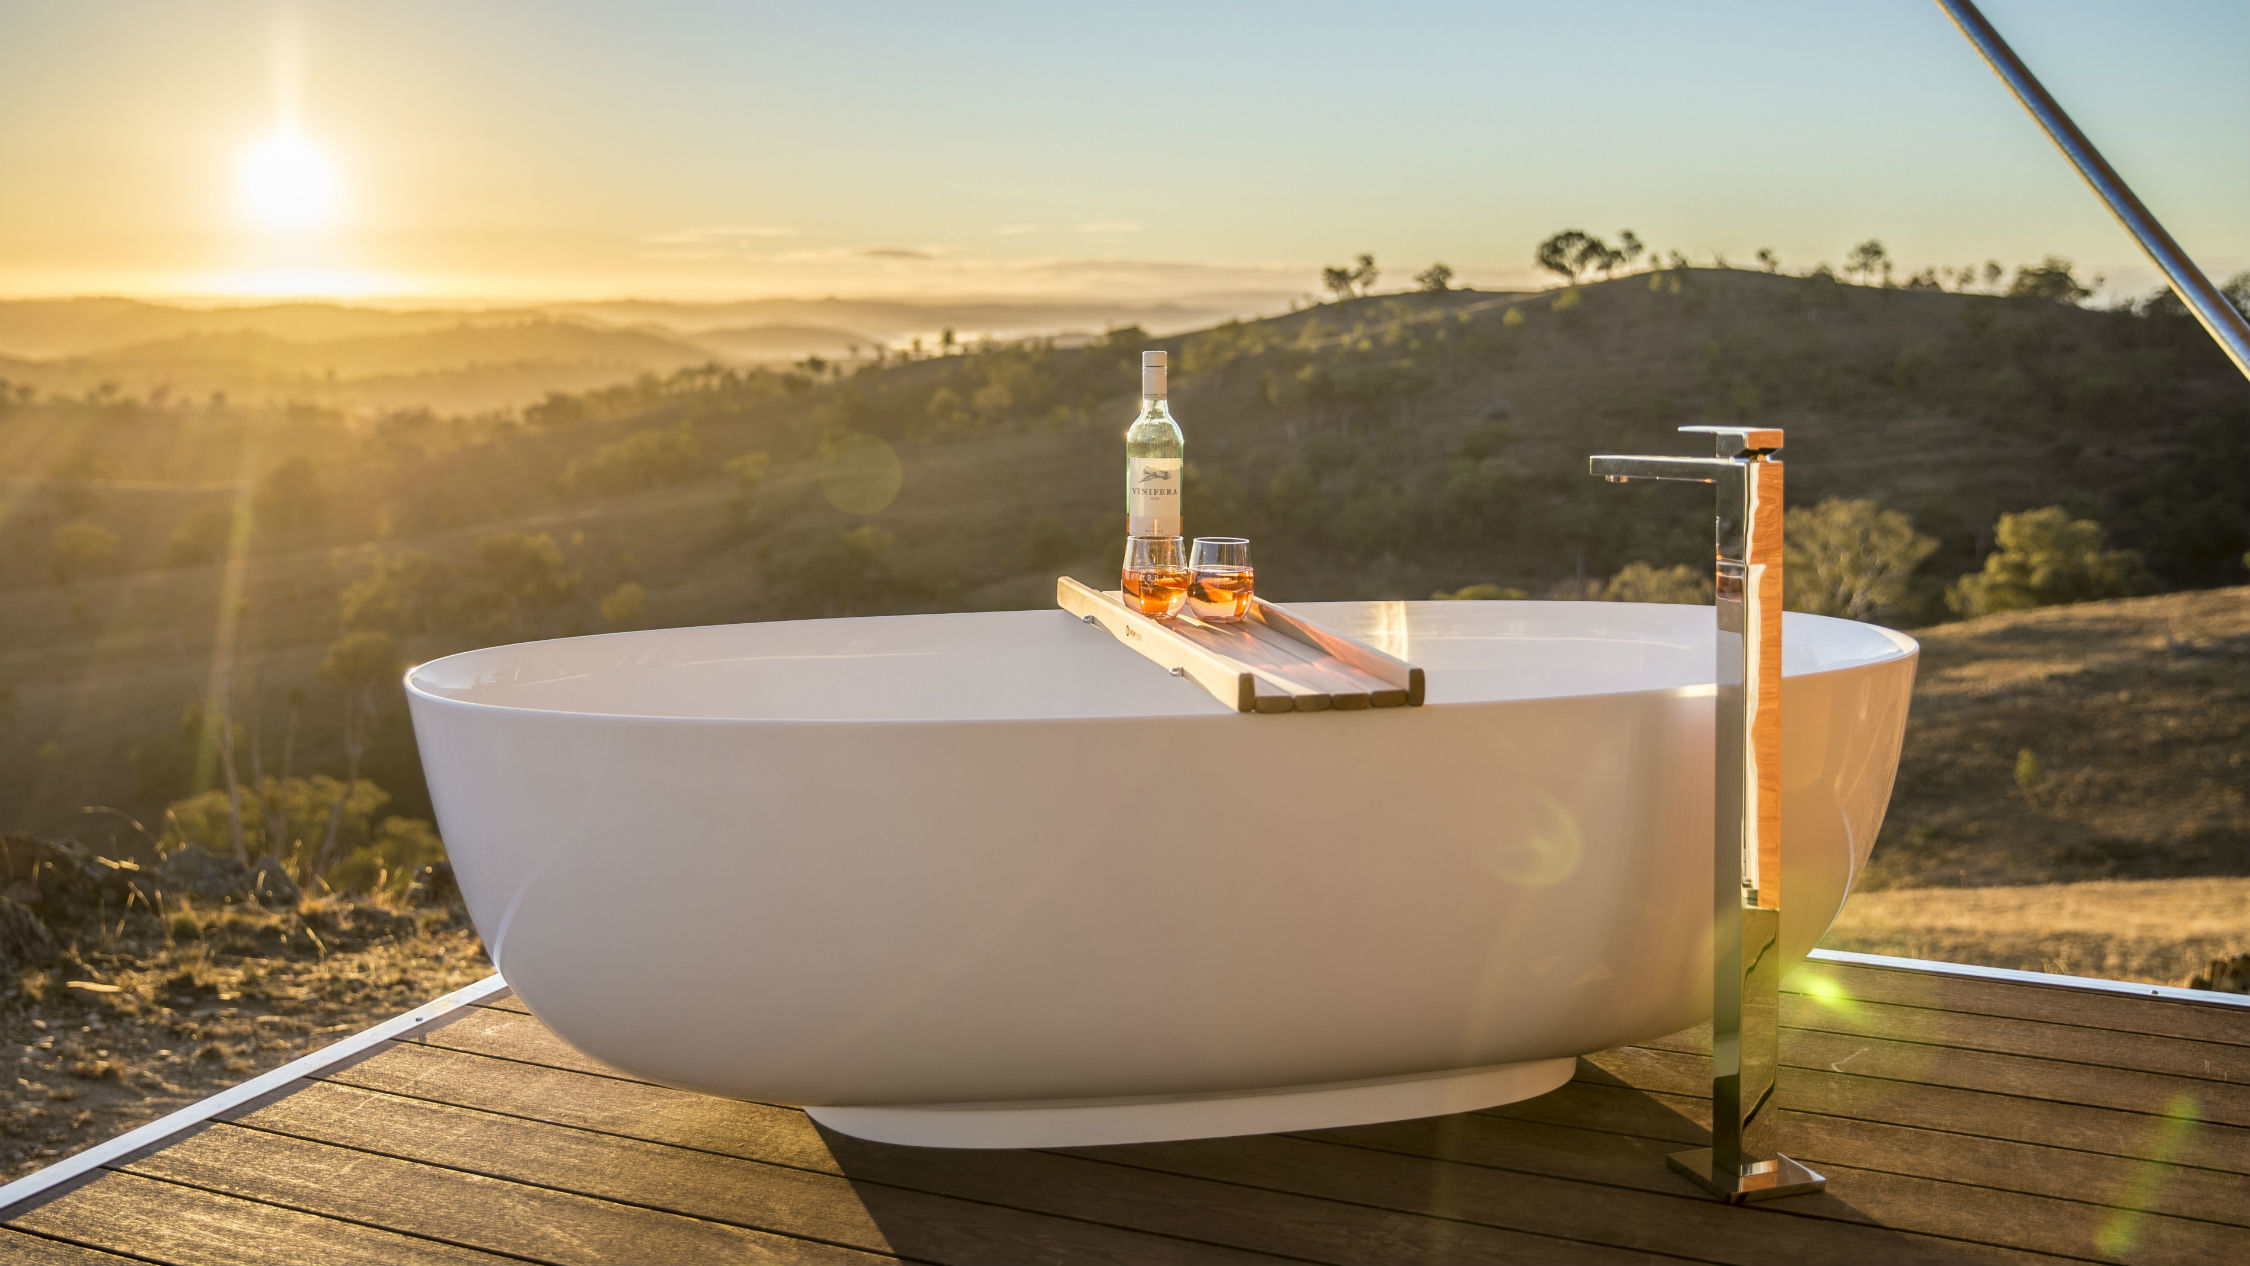 Bath tub at Sierra Escape glamping in Mudgee